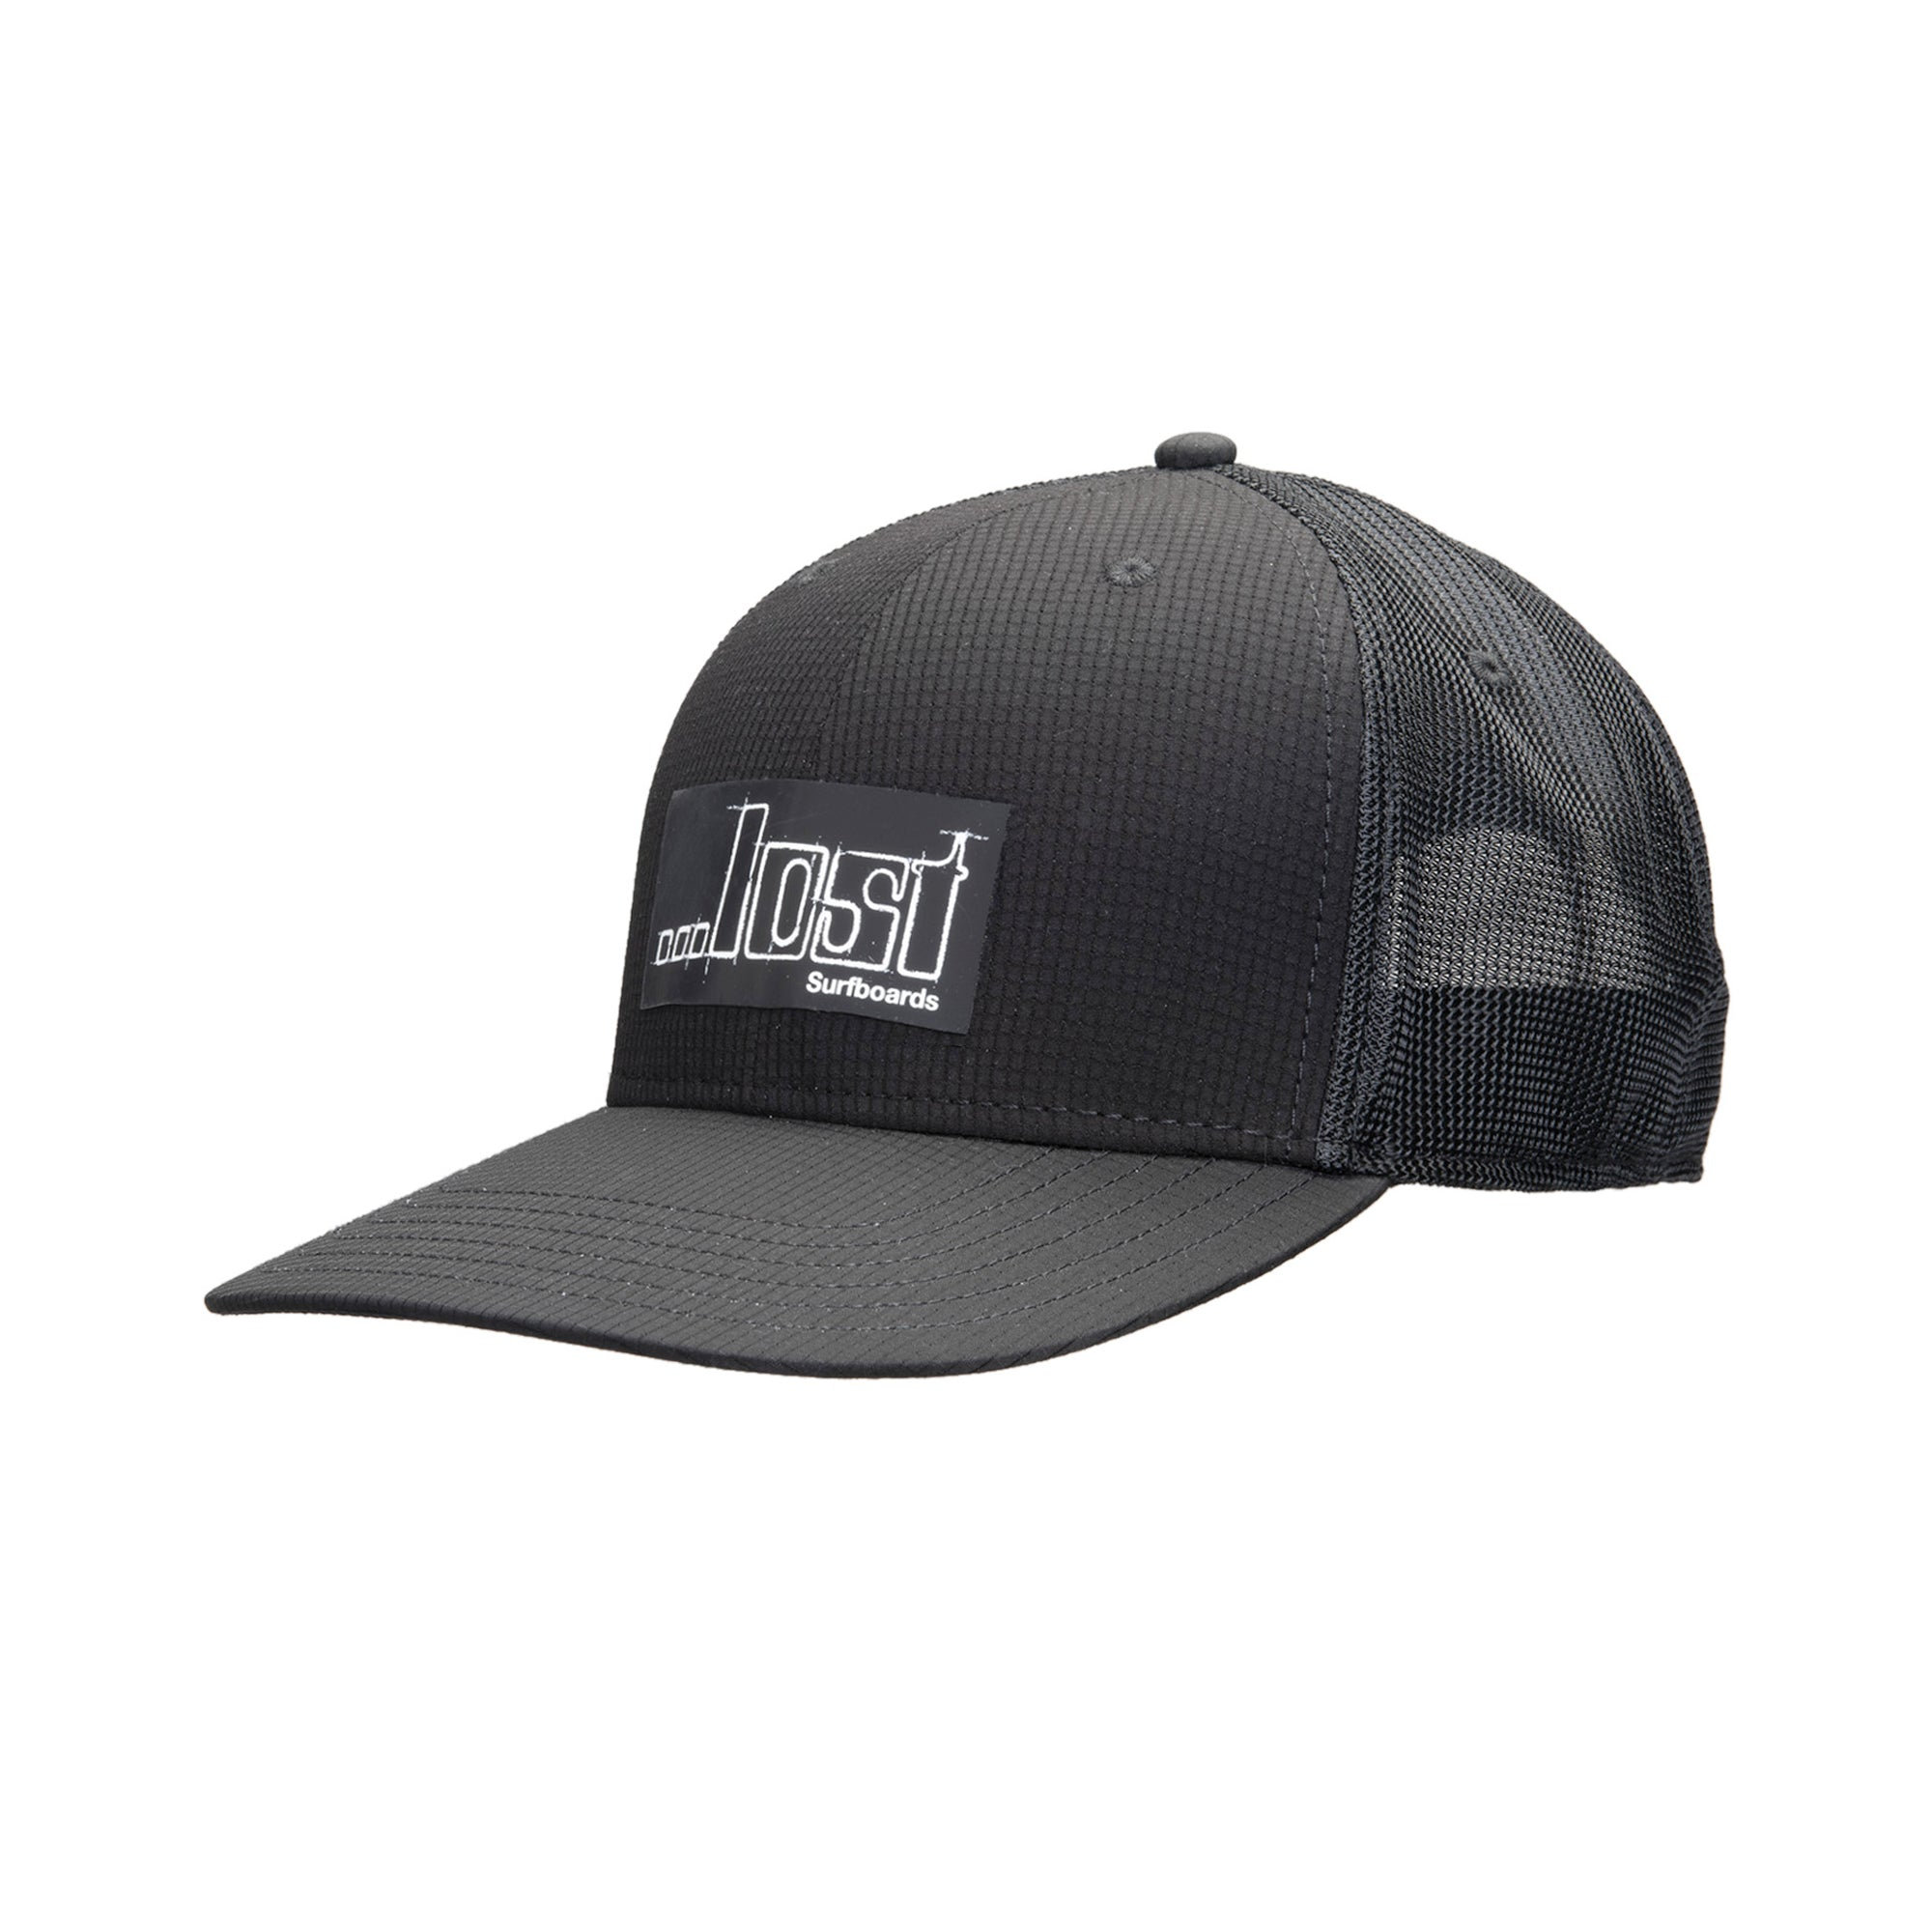 Lost Beastie Men's Trucker Hat